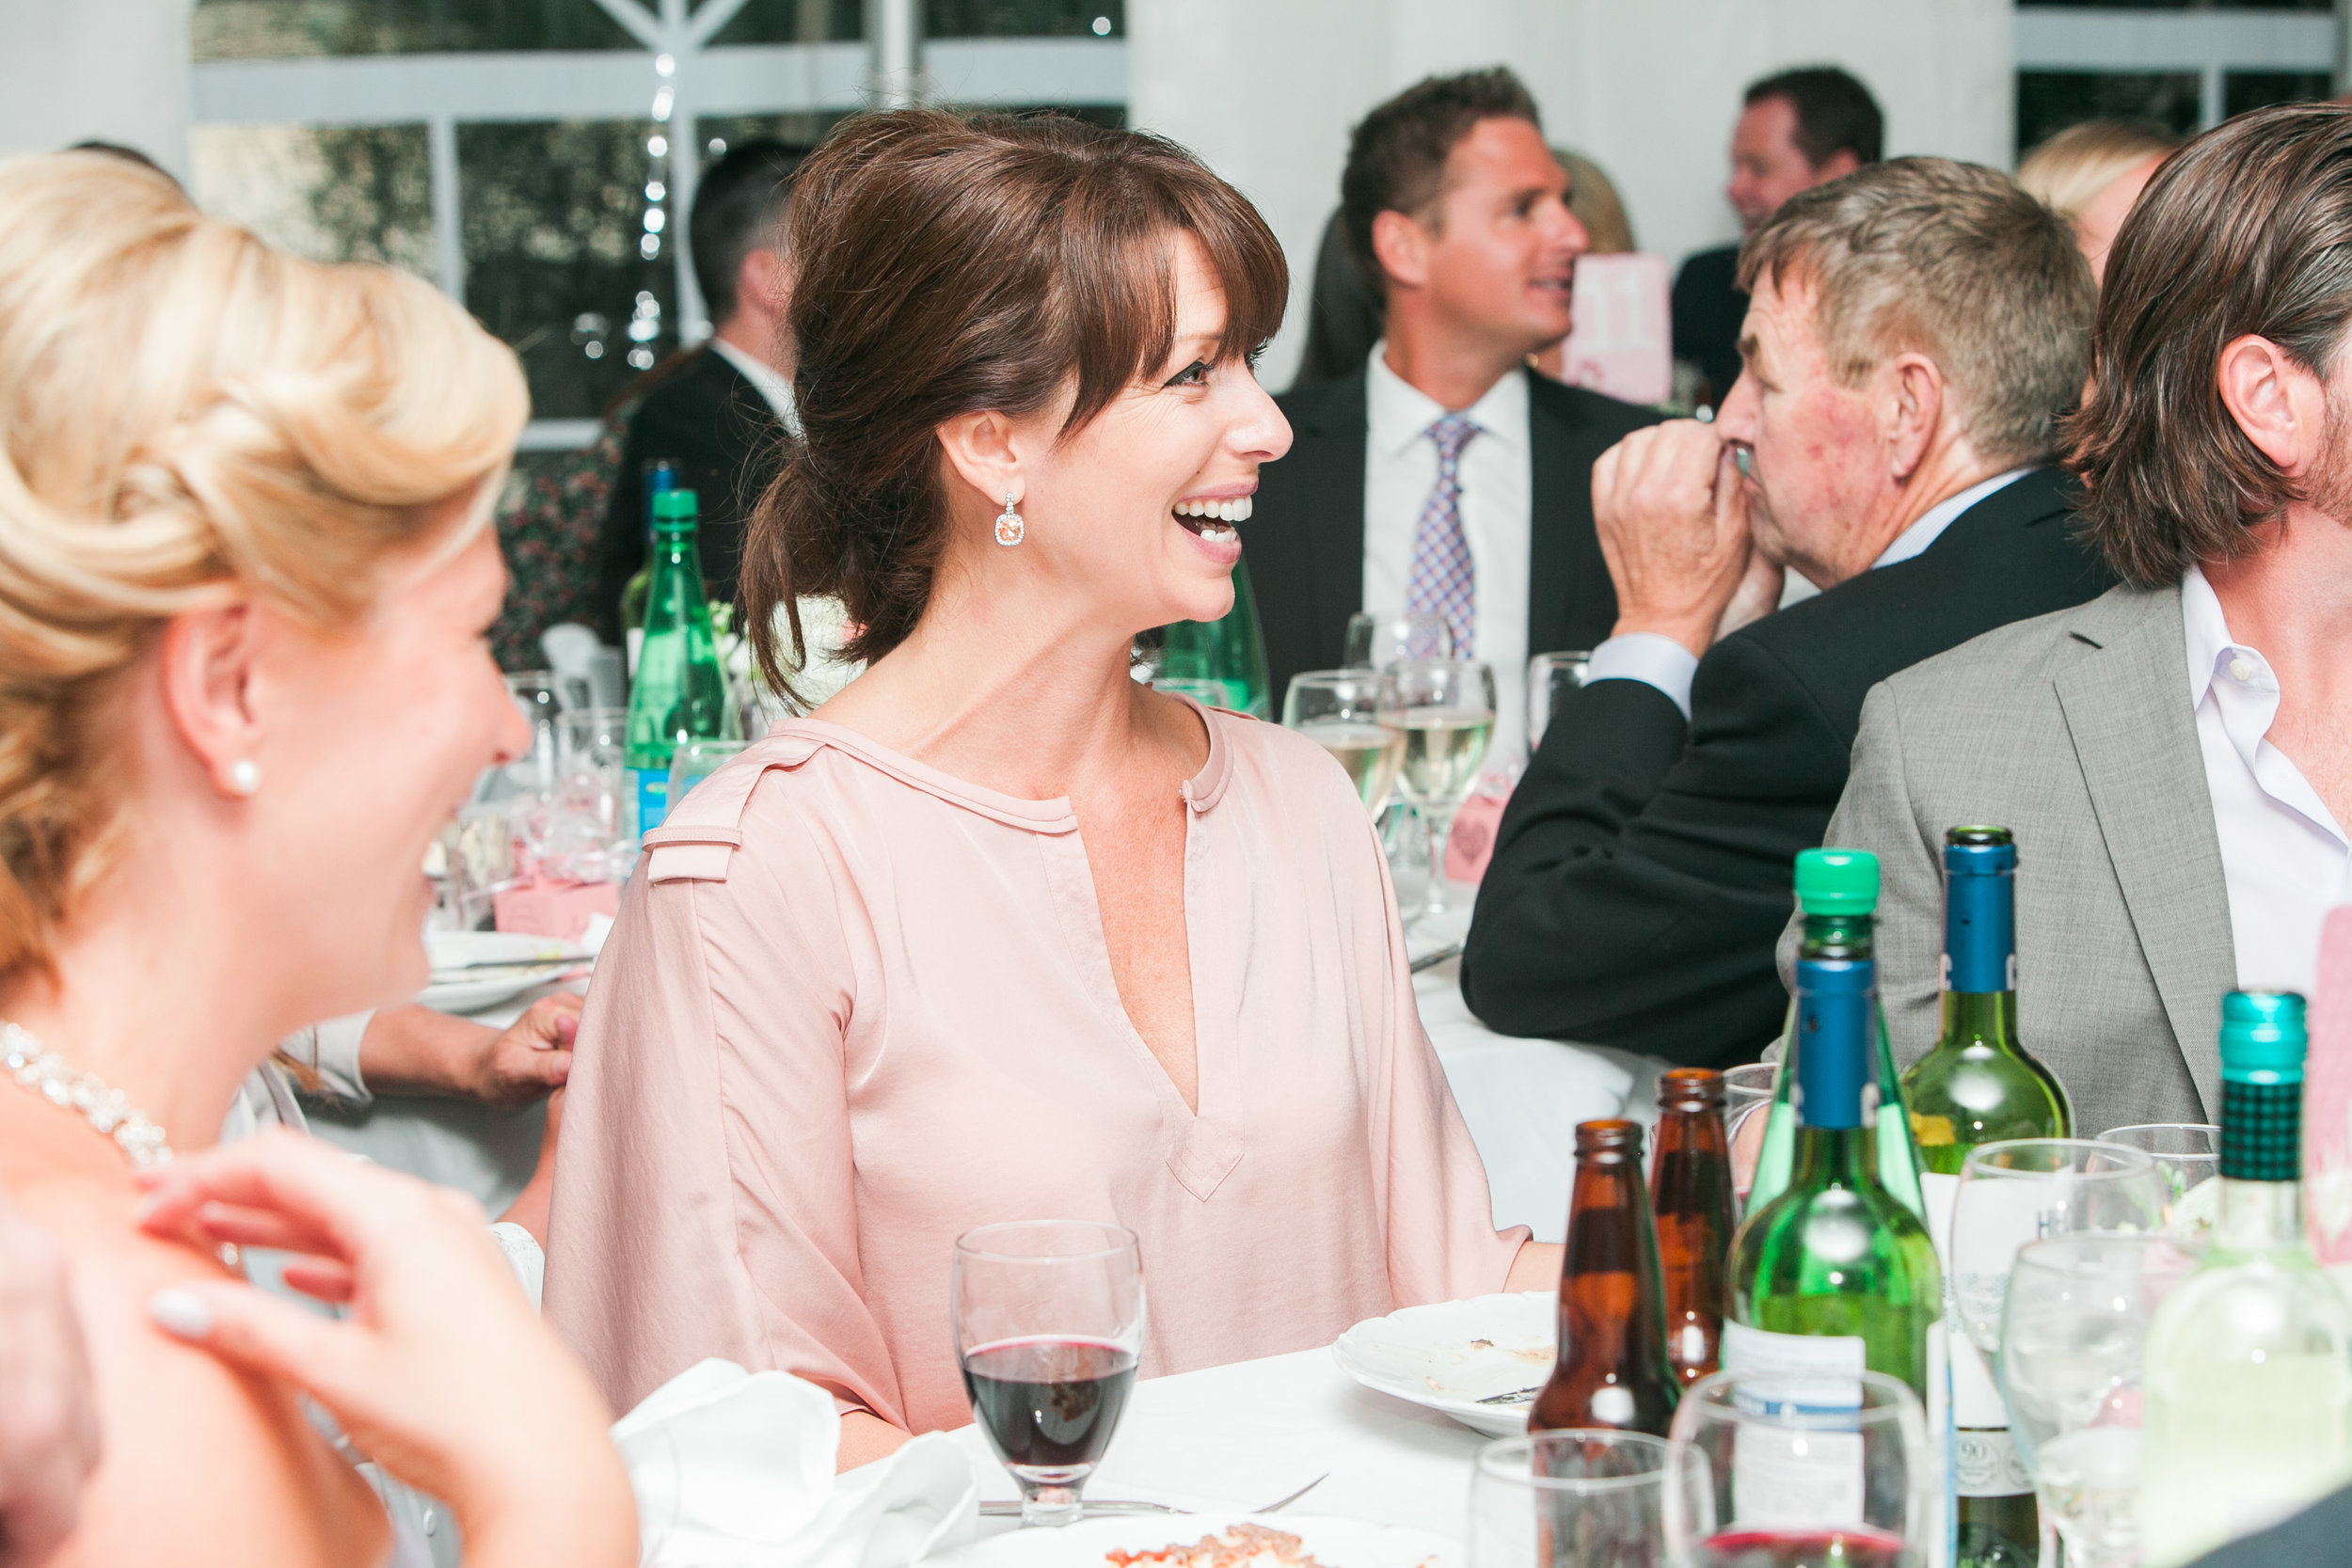 Guest laughing at speeches during dinner